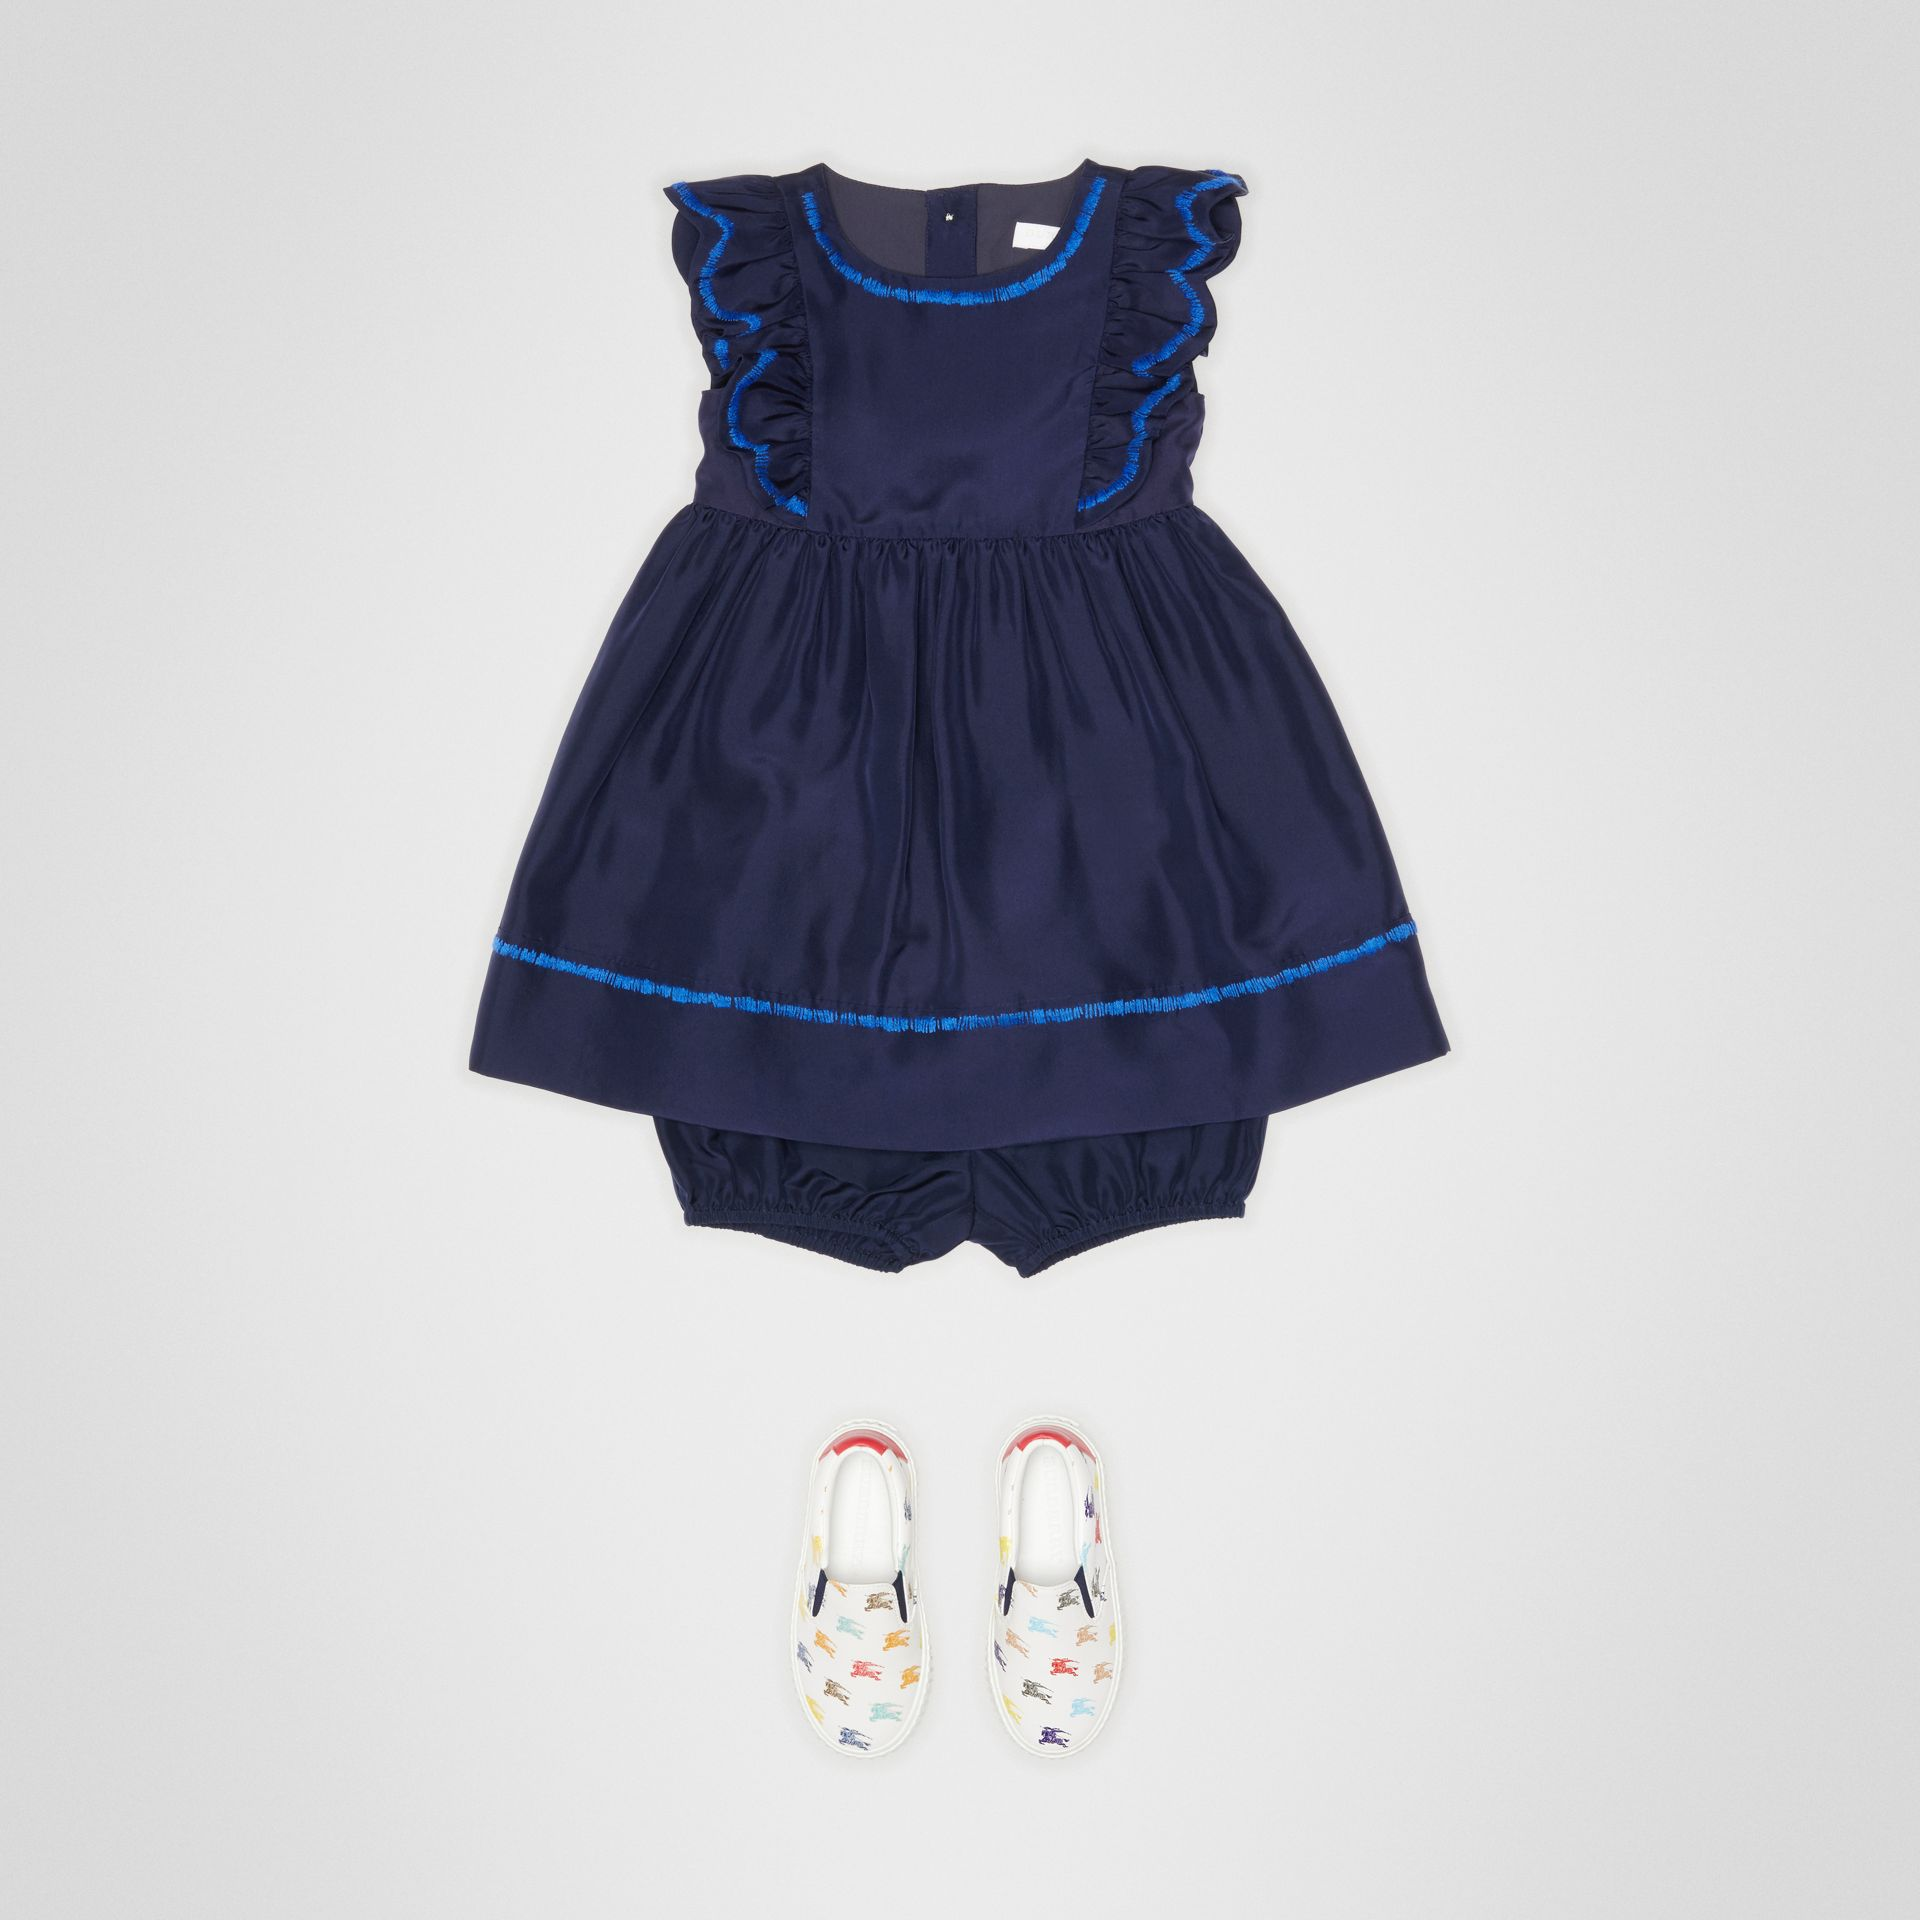 Robe et bloomer en soie brodée à volants (Marine) - Enfant | Burberry Canada - photo de la galerie 2